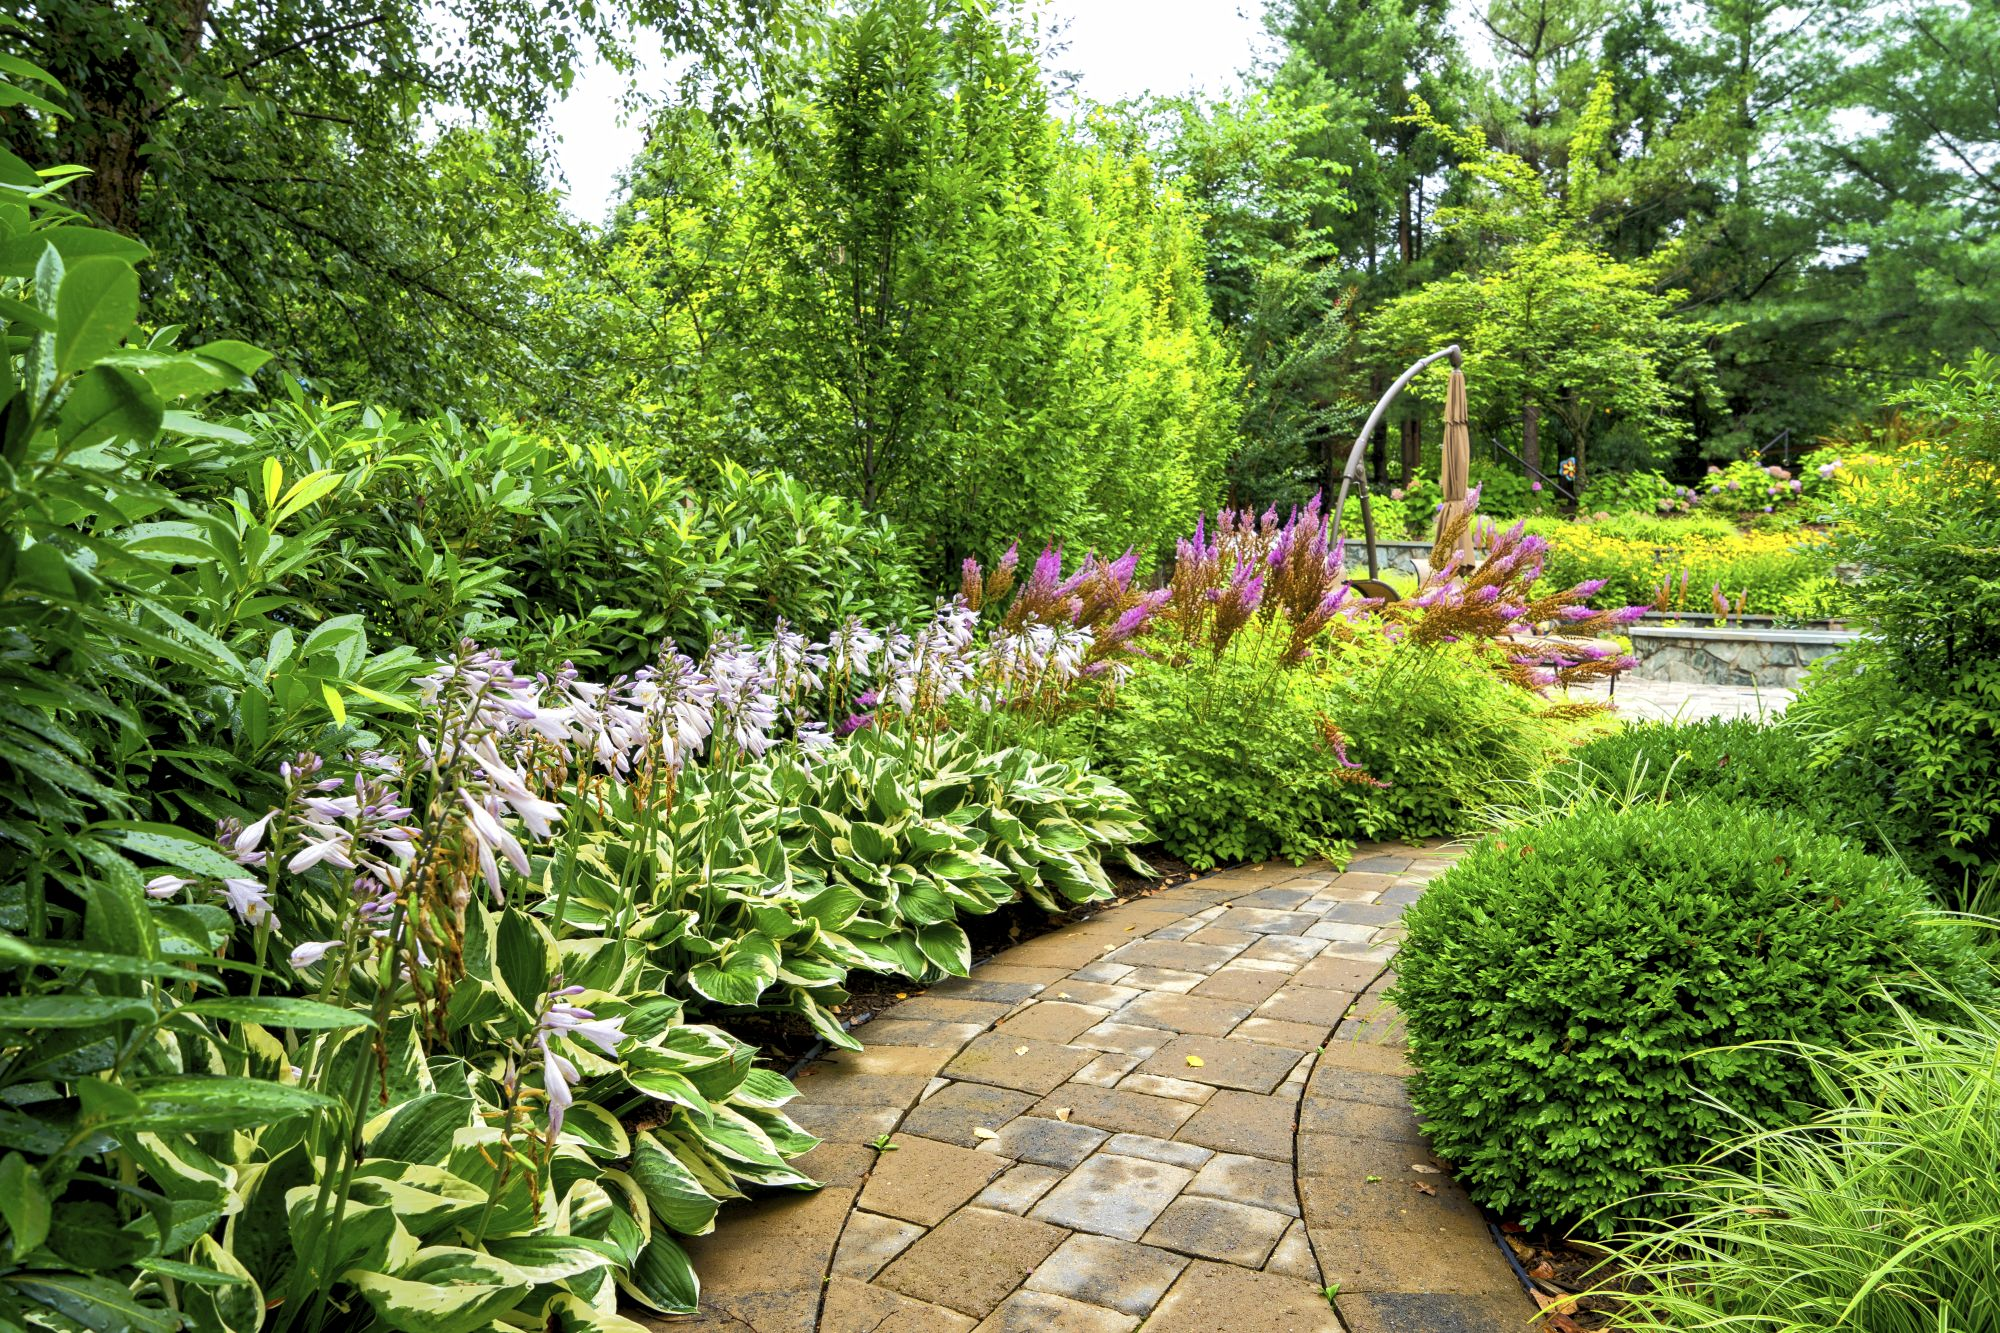 Reputable Landscaping Companies vs. Fly-By-Night Landscapers: 11 Red Flags to Watch For